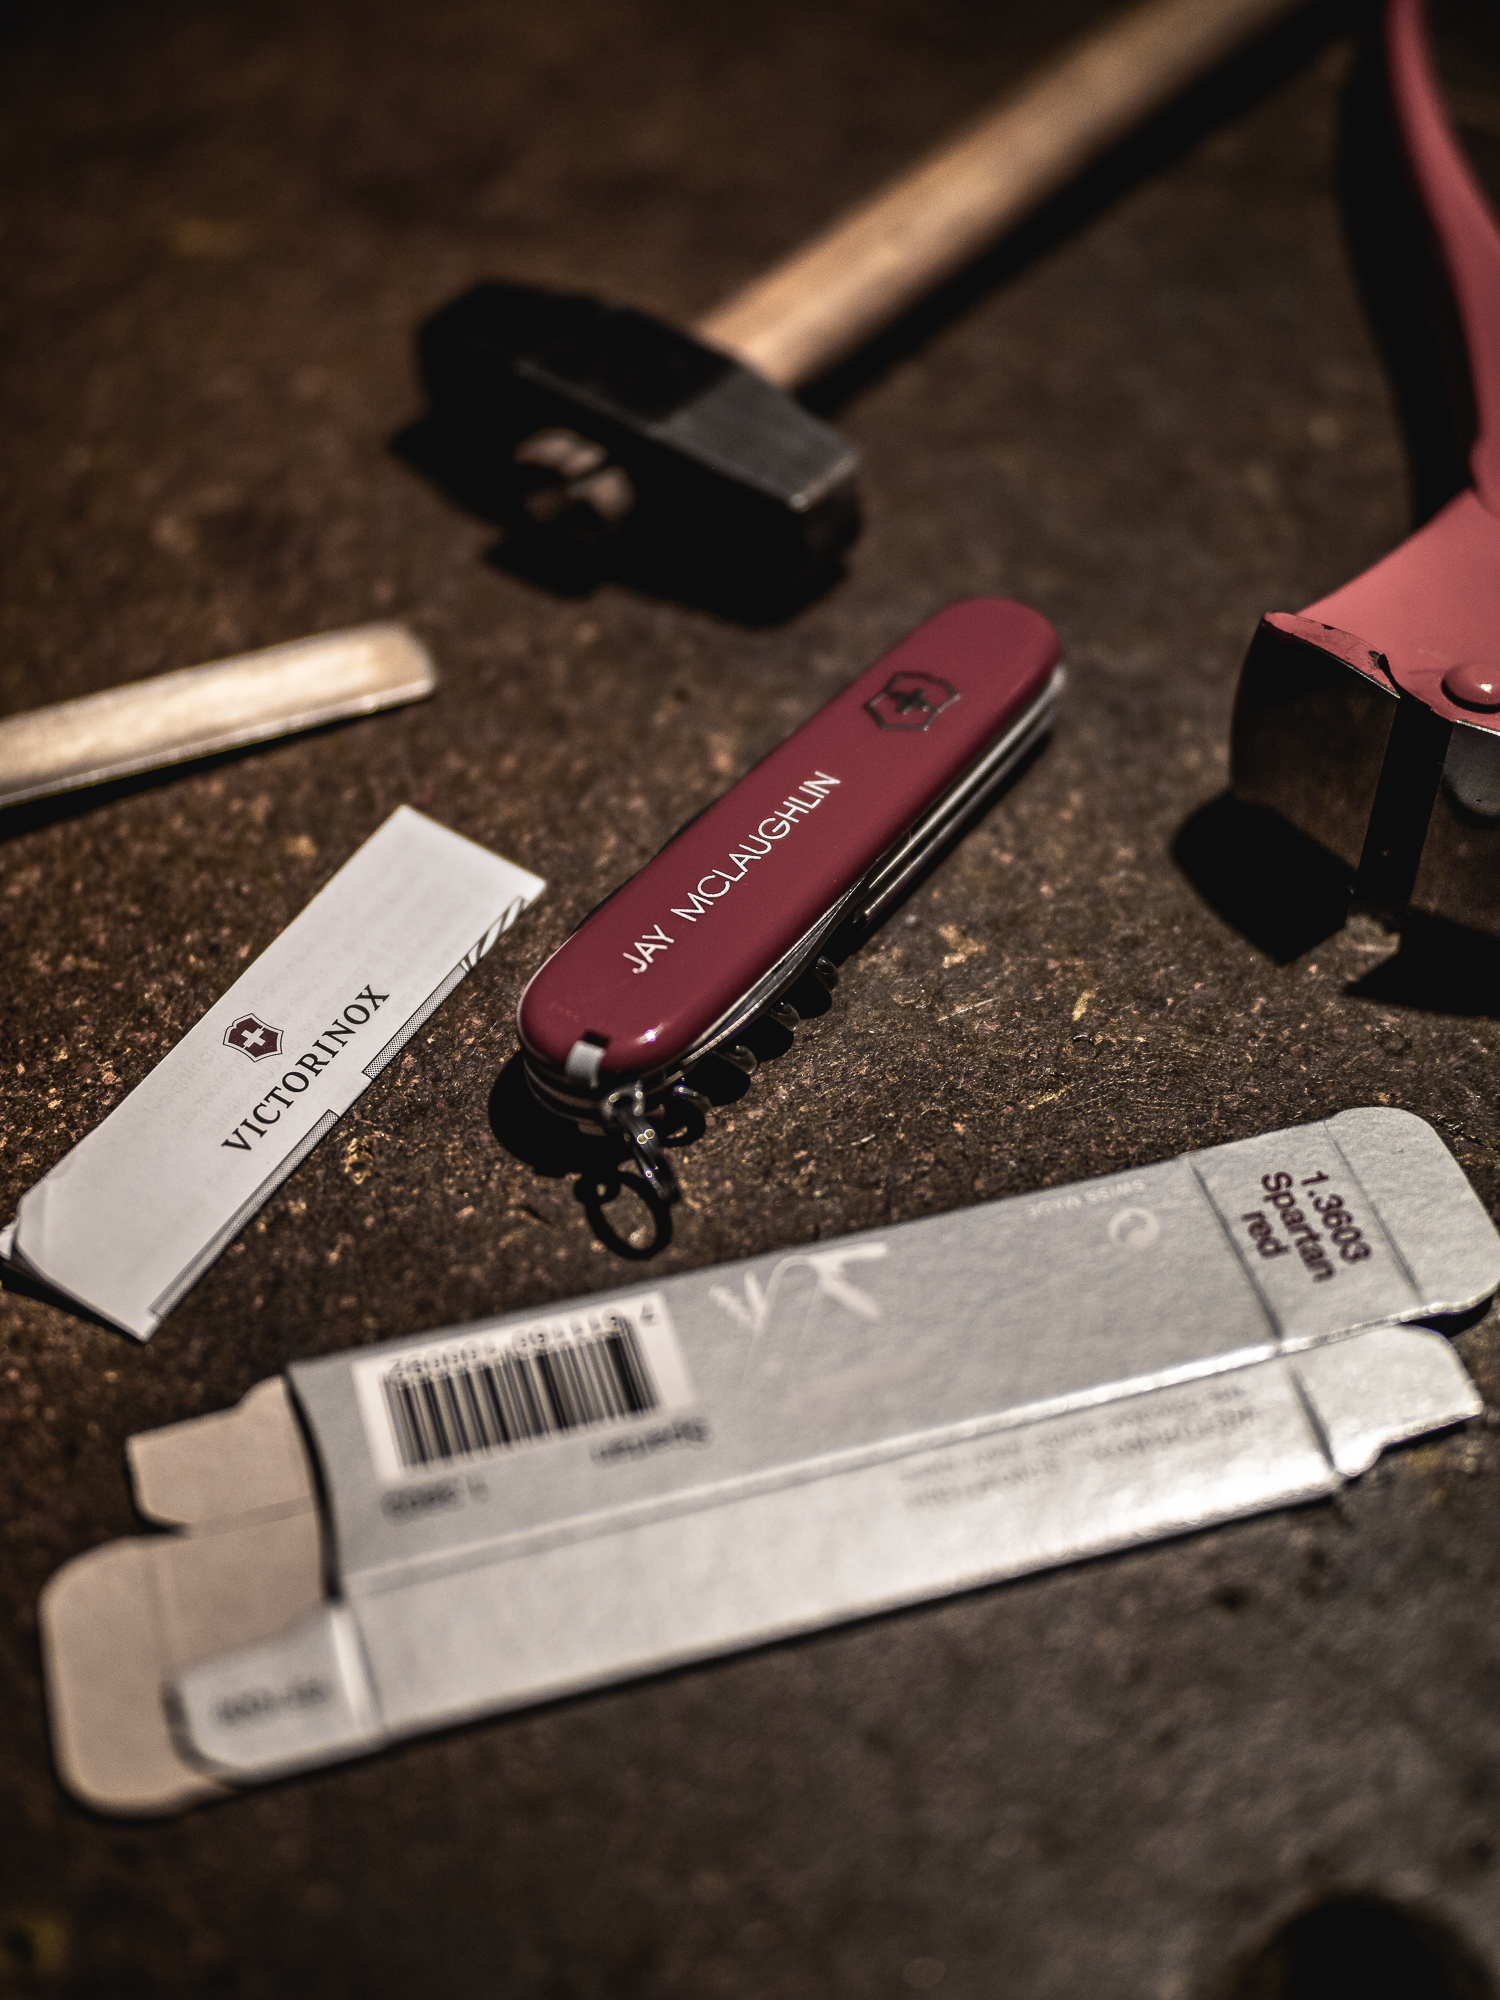 Victorinox Spartan Swiss Army Knife Officer Personalised Customised Hand Made Experience Flagship Store New Bond Street Craftsmanship Heritage History